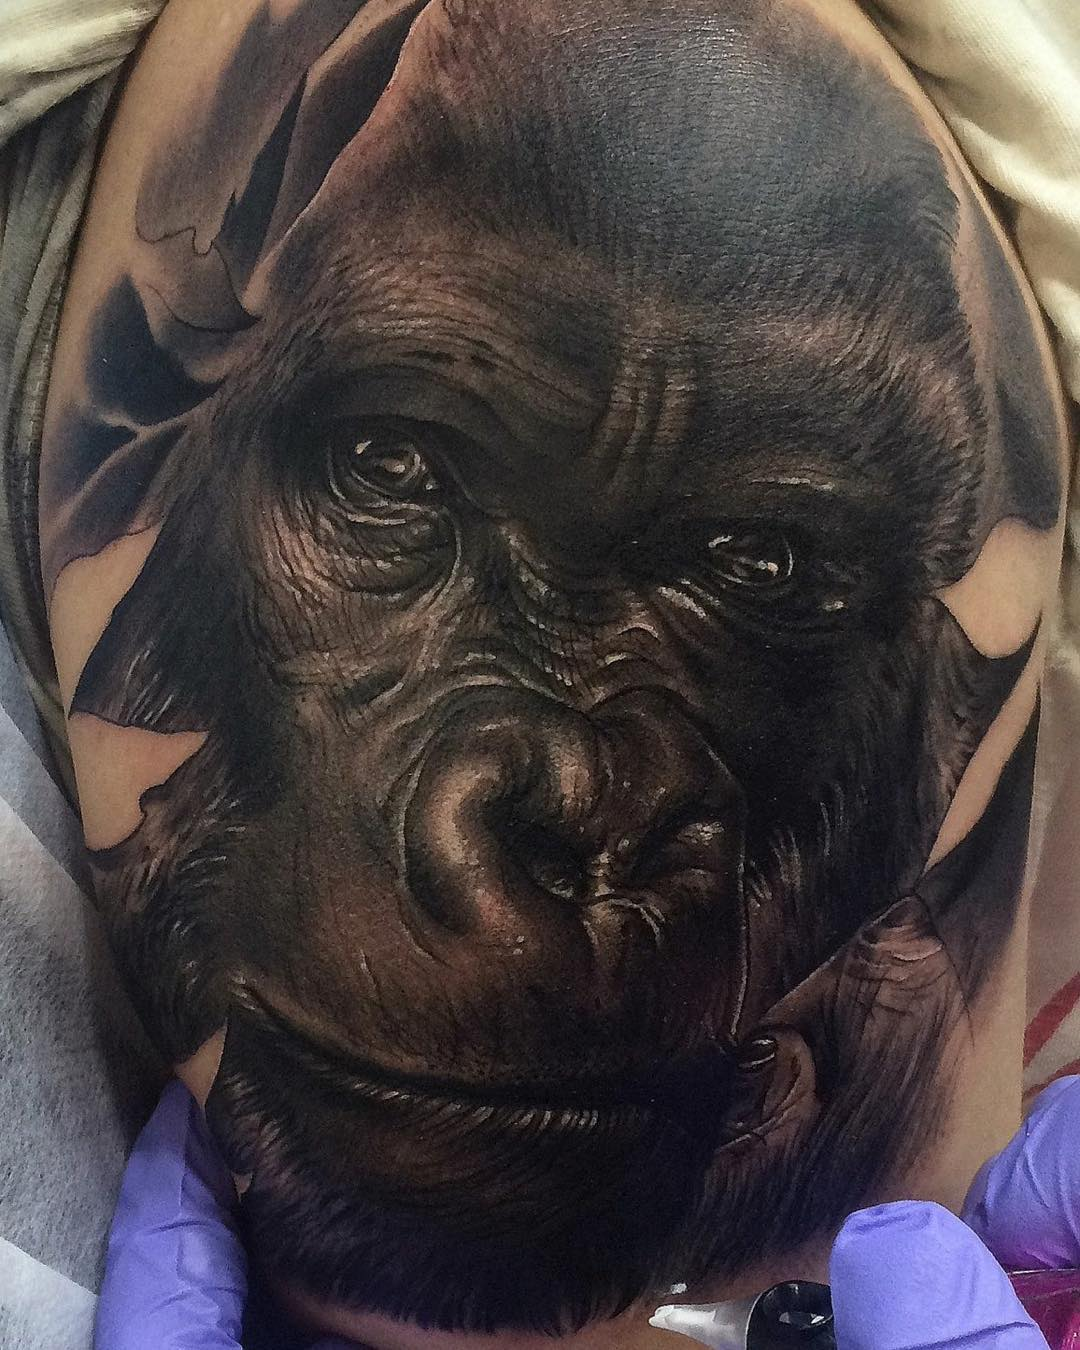 realistic tattoo - close-up face of gorilla in black and gray shades